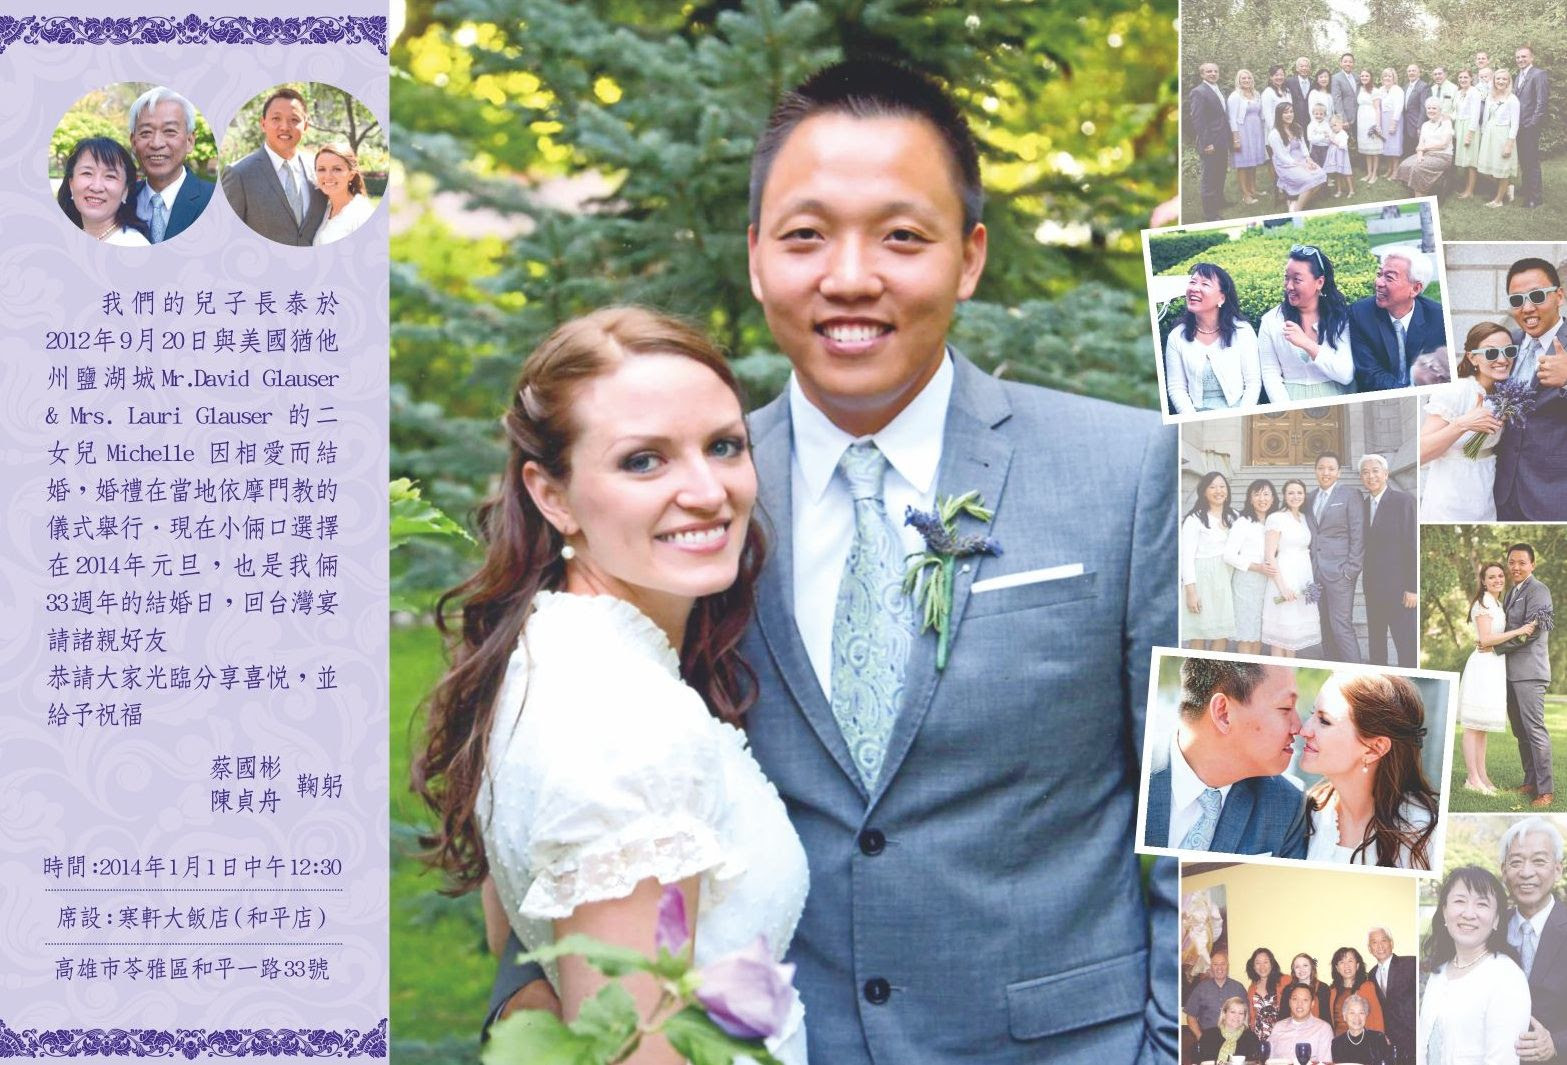 Front of Our Taiwanese Wedding Invitation photo 20131120-9E976587-852180015E2B559C5E16Inside_zpsbd3a38e7.jpg